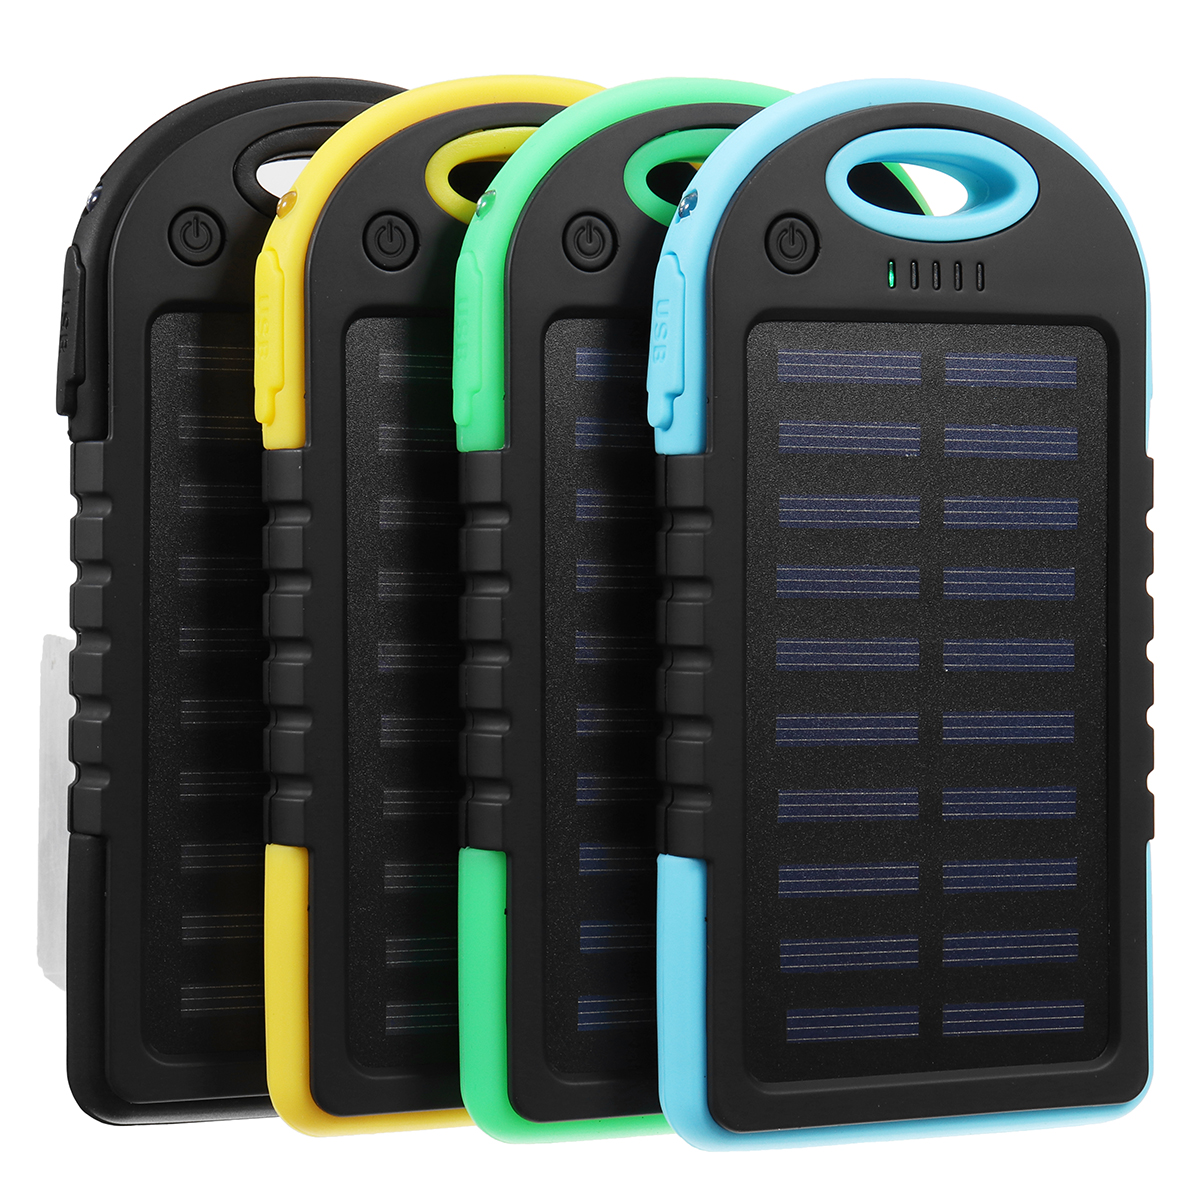 Portable 30000mAh Solar Power Bank USB Battery Charger For Phone Tablet Notebook allpowers power bank 30000mah portable phone